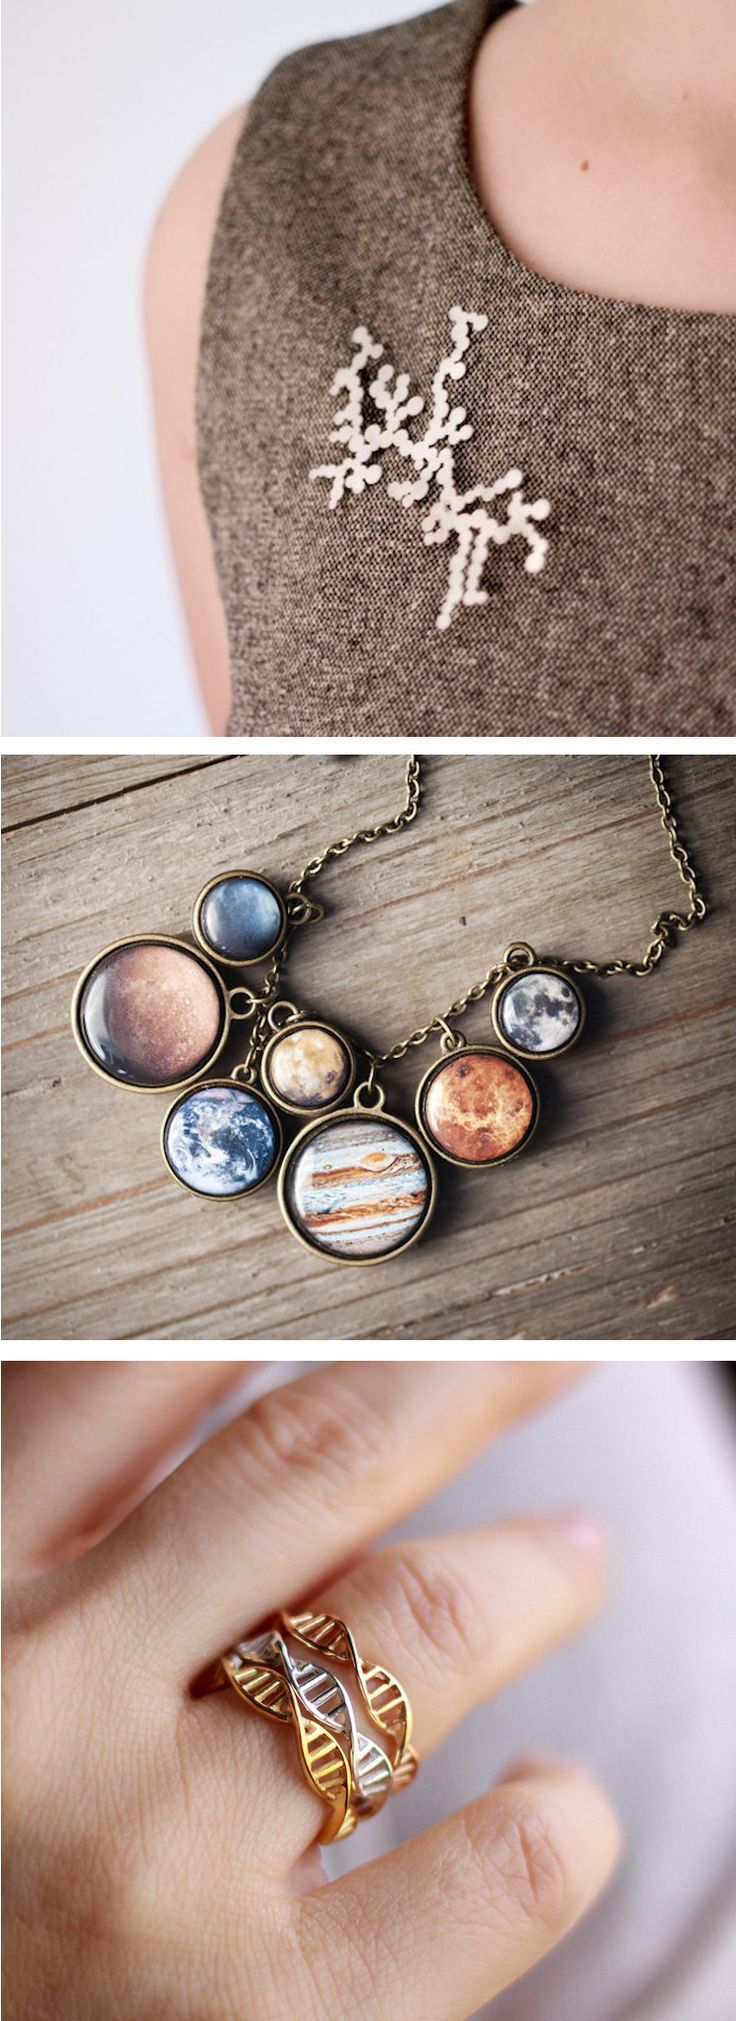 Science accessories // gifts for science lovers // galaxy necklaces